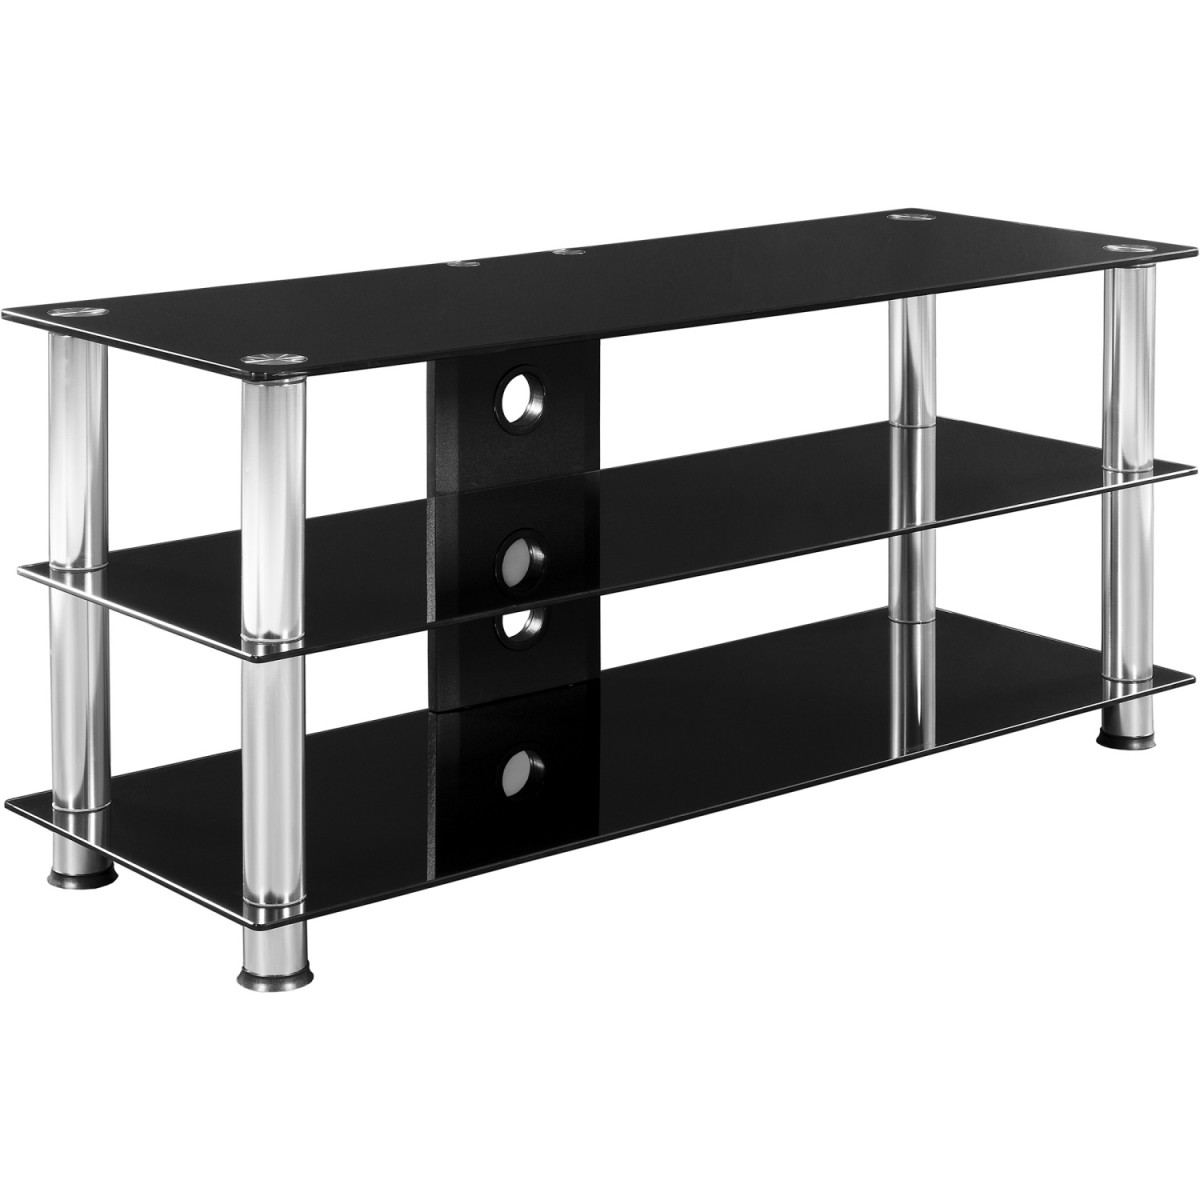 stilista tv rack tv fernsehtisch schwarzglas optik wohnaccessoires haus. Black Bedroom Furniture Sets. Home Design Ideas